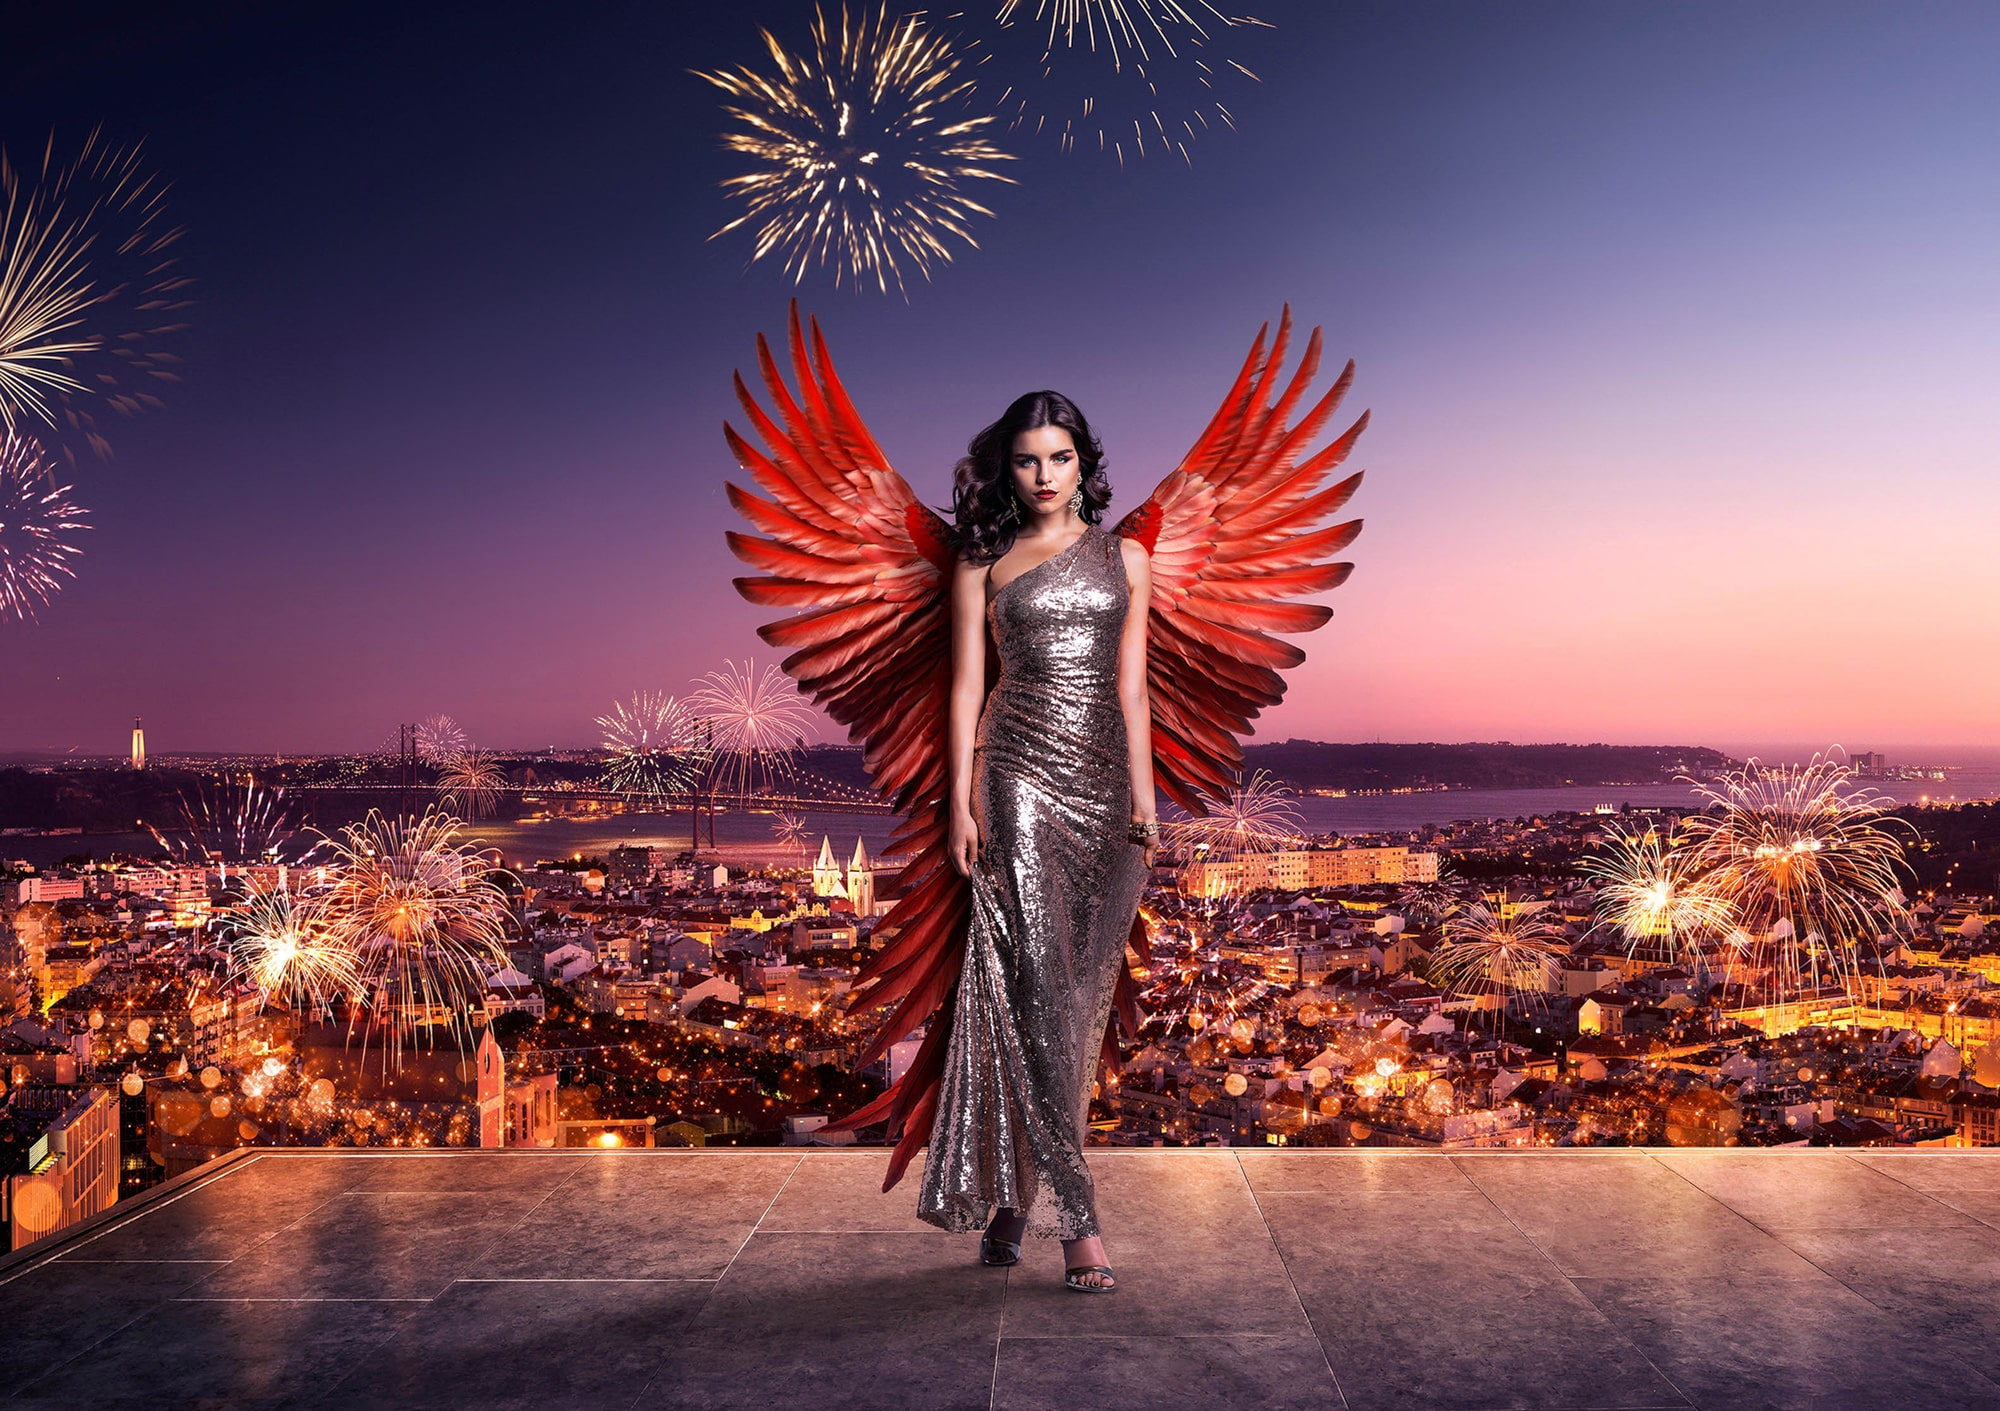 enton-thatcher-sony-alpha-9-model-with-angel-wings-stands-atop-a-building-with-lisbon-cityscape-behind